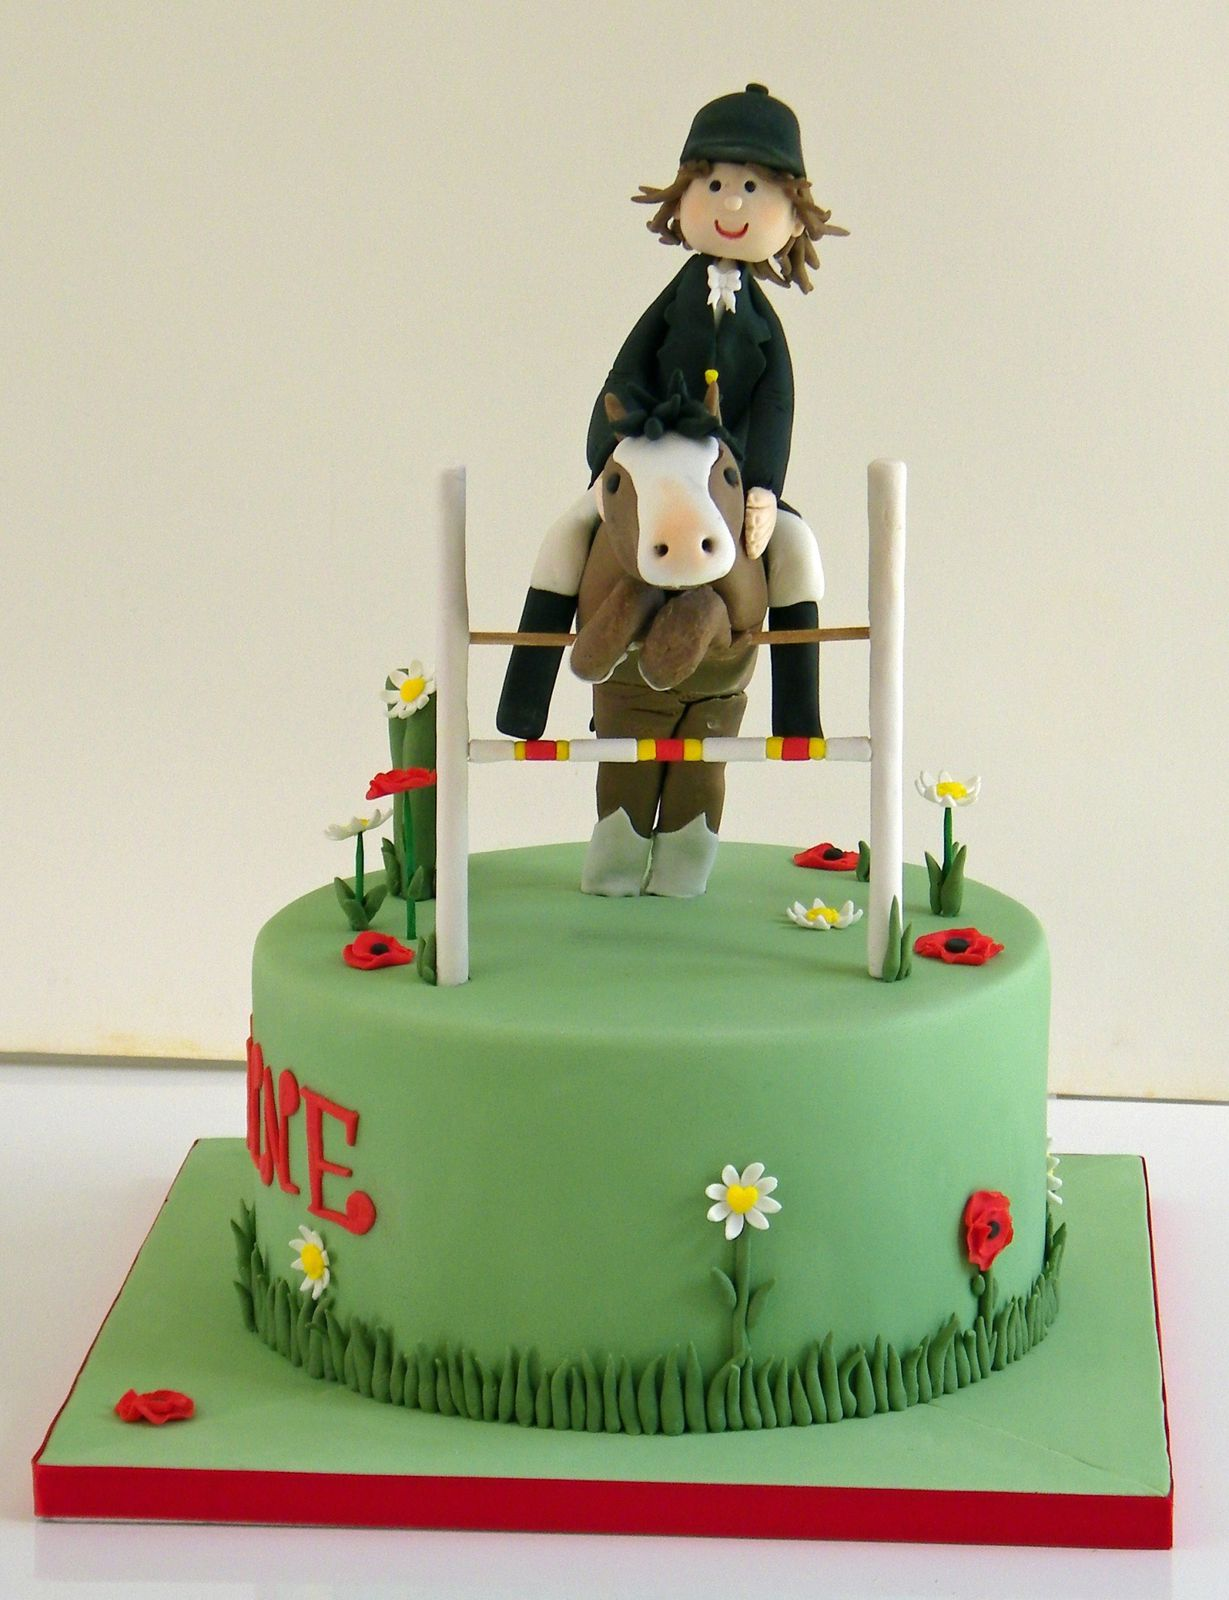 decoration gateau equitation